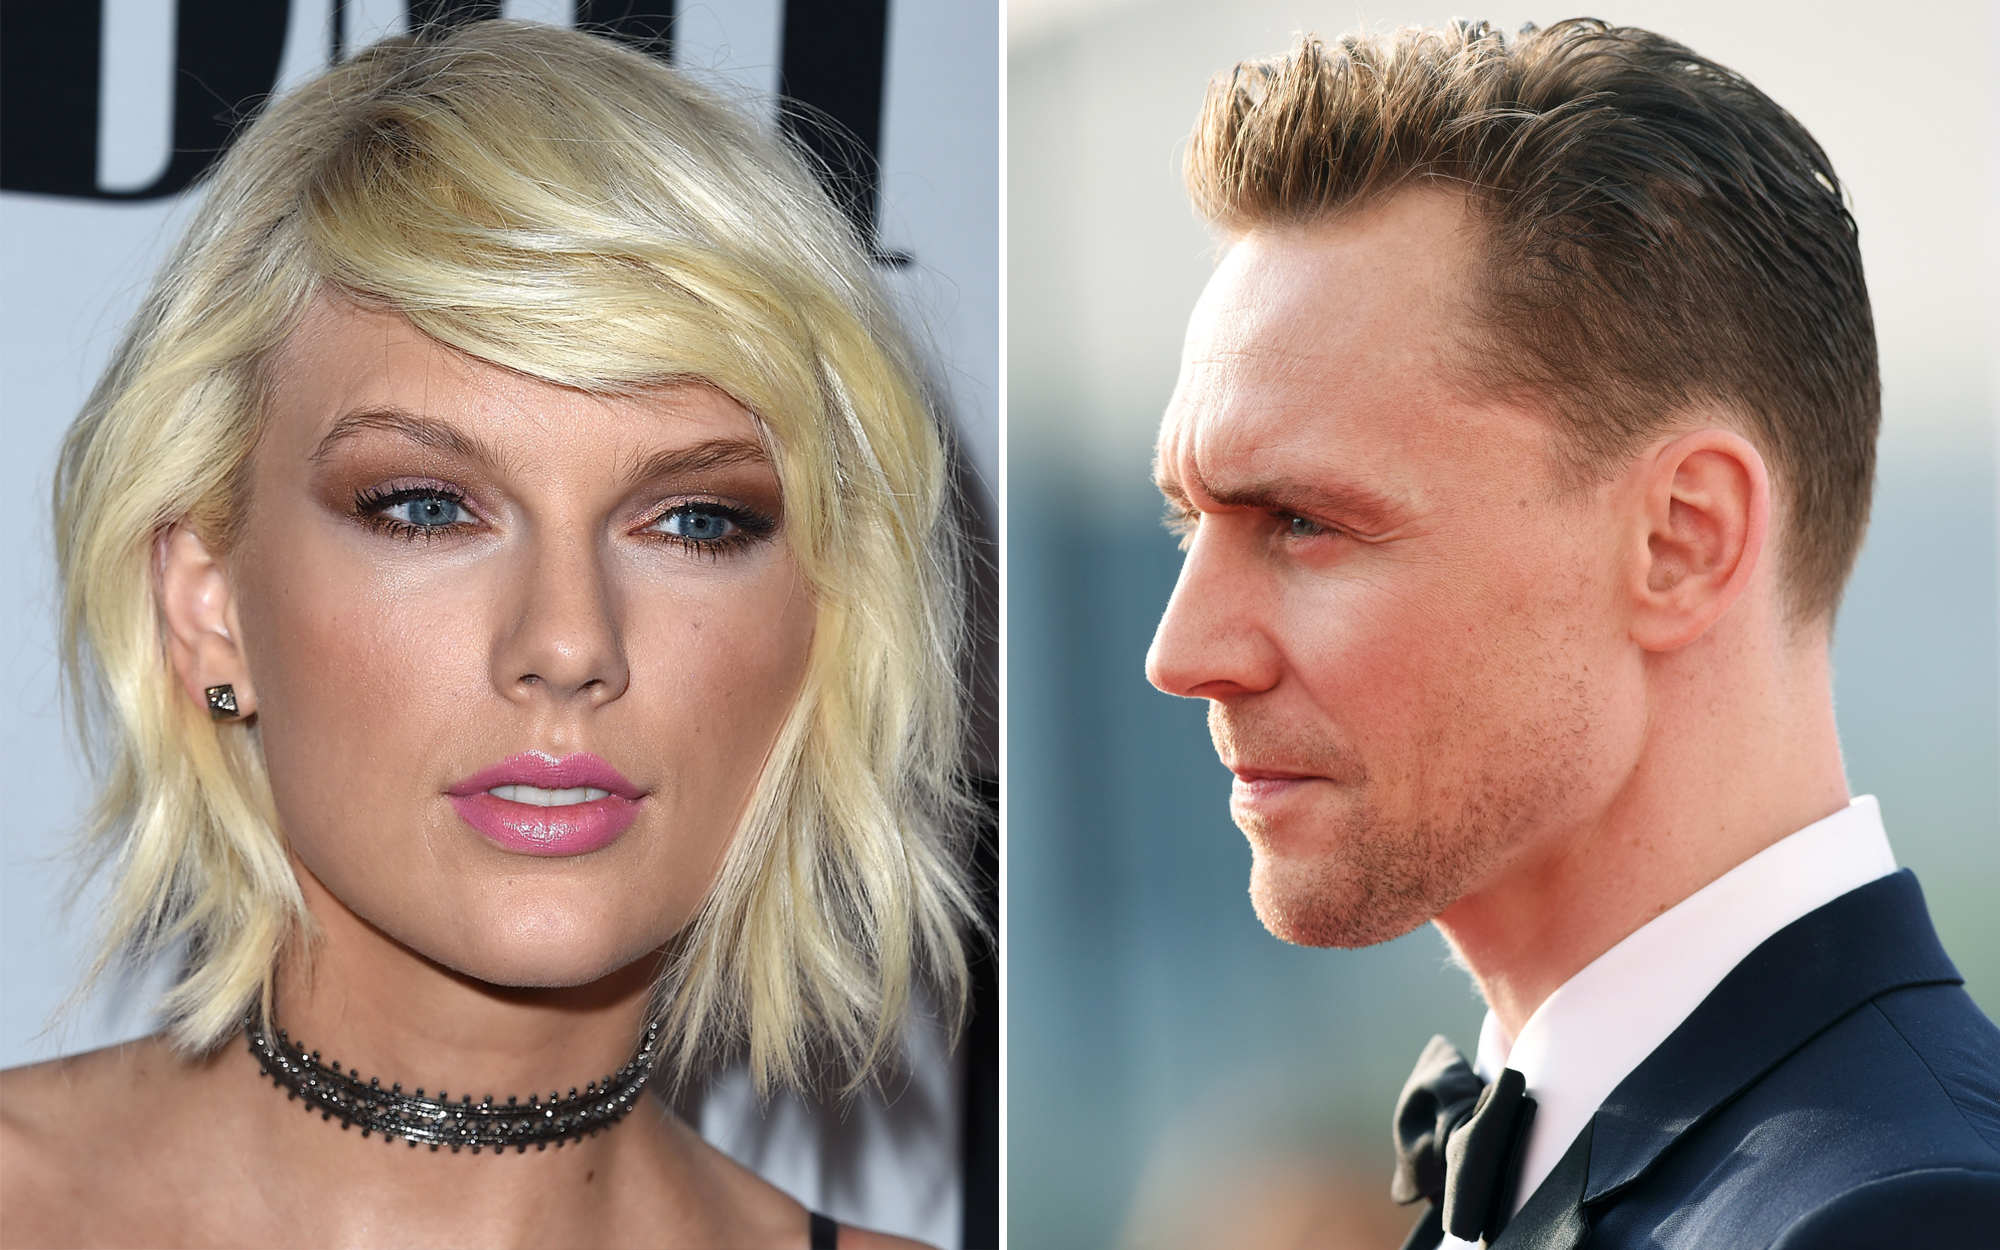 Taylor Swift and Tom Hiddleston Travel 6,500 Miles Together in Two Weeks